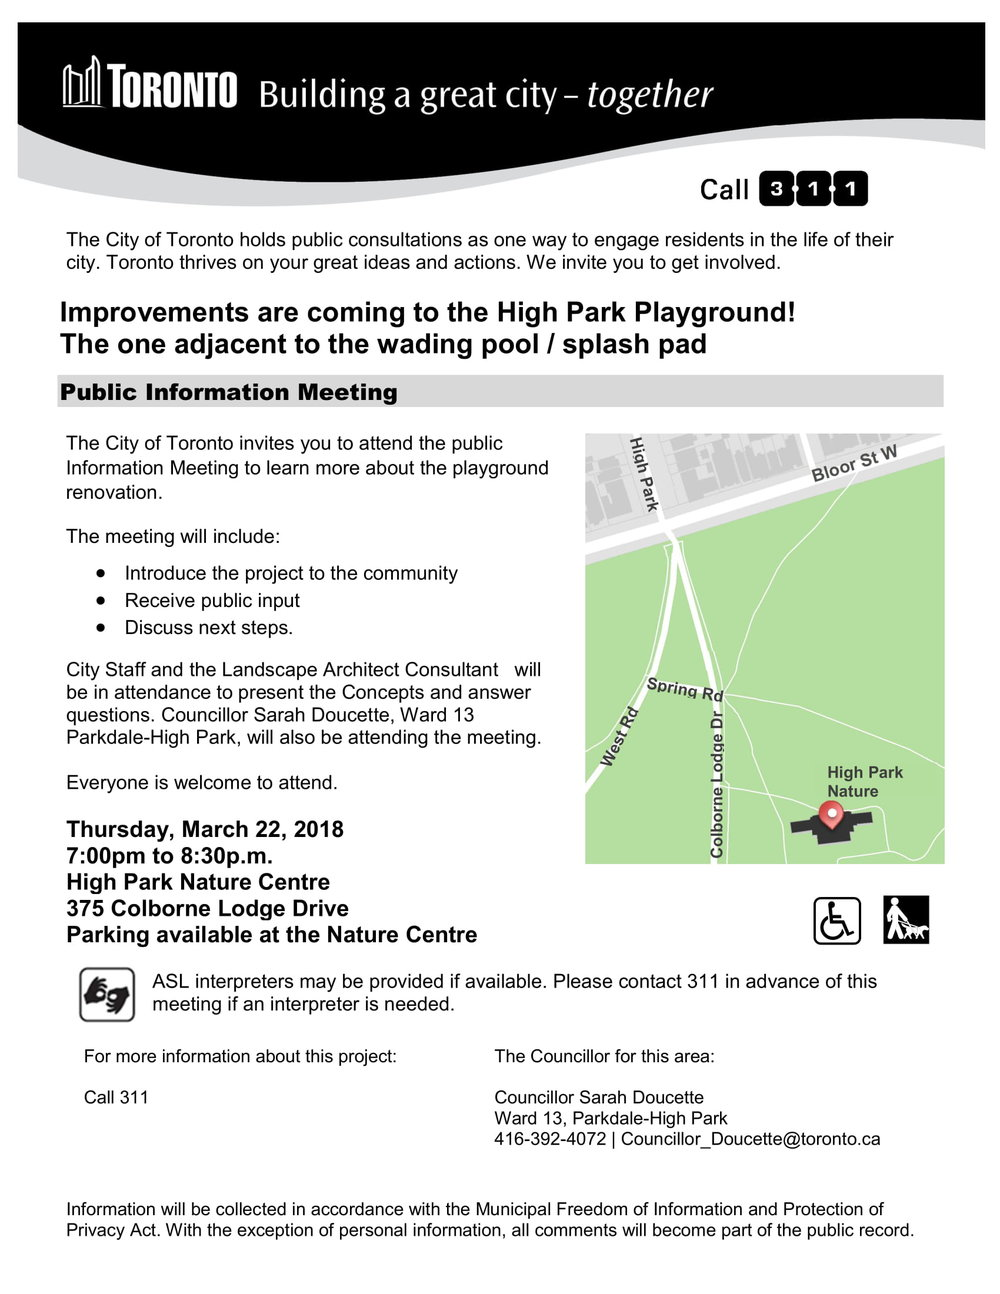 High Park Playground_Public Facilatation Flyer-1.jpg